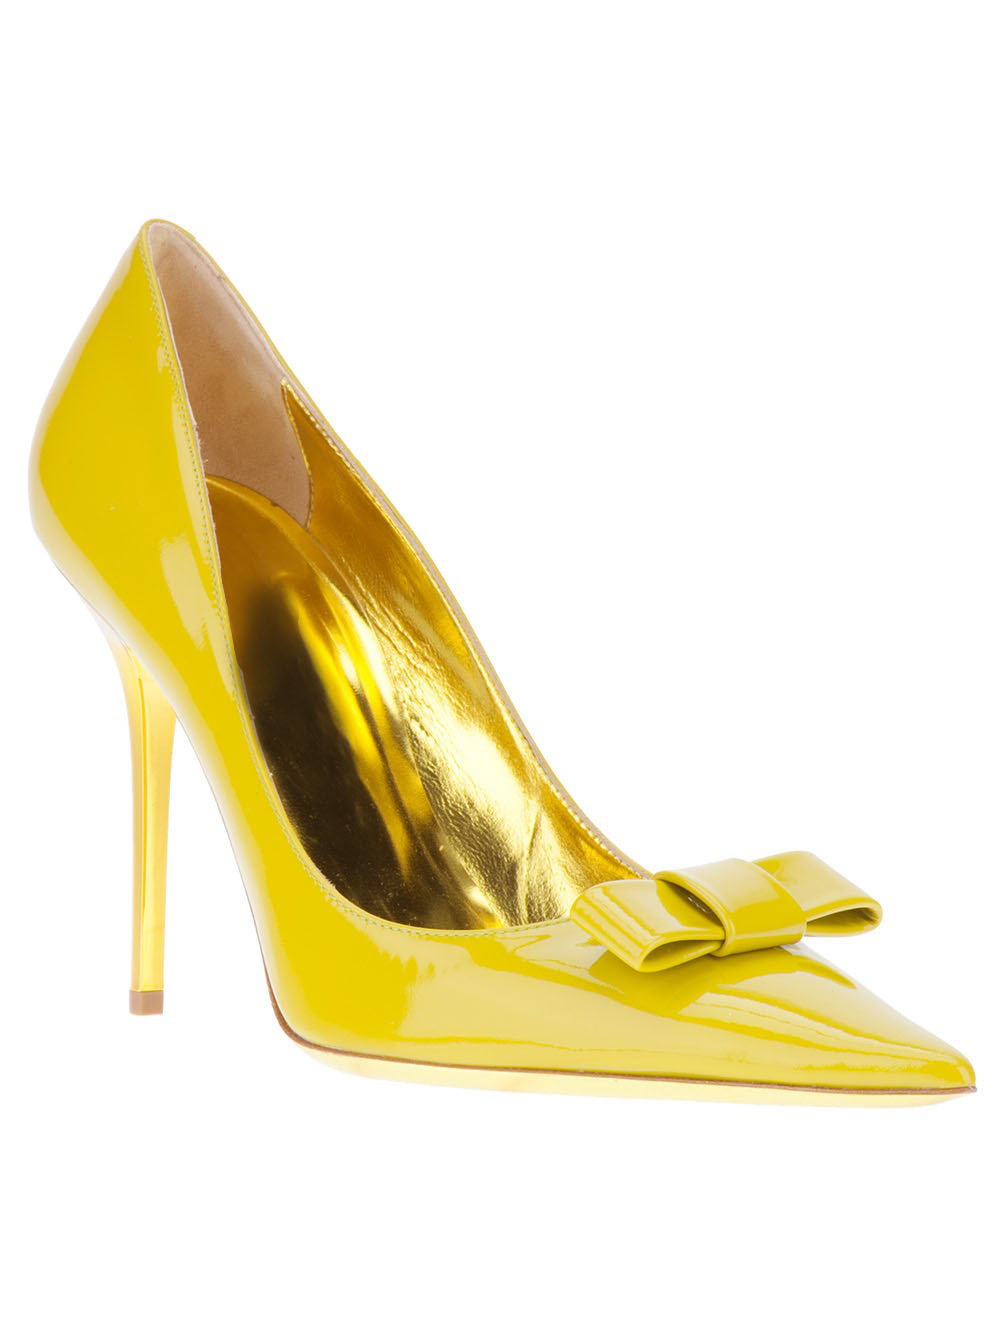 Fashion Women High Heels Pump 2015 Women Dress Shoes Yellow Patent Leather Butterfly Knot Decoration Pointy Toe Pumps Wholesale <br><br>Aliexpress